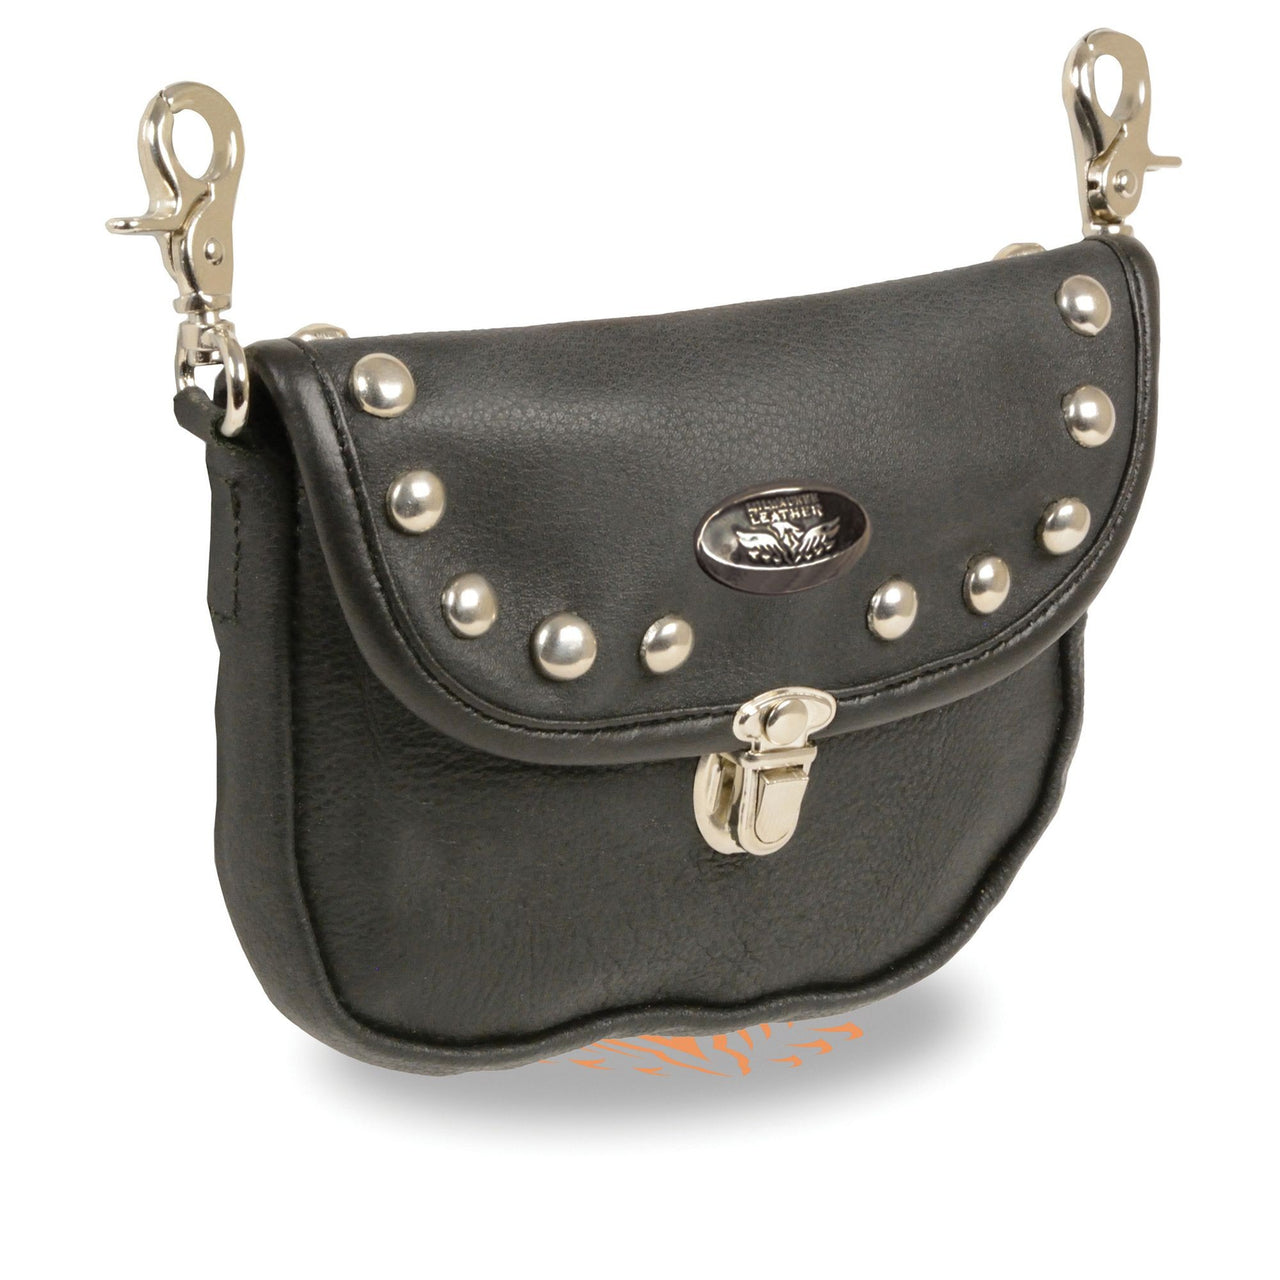 Leather Belt Bag w/ Studded Flap & Belt Clasps(8.5X5.5) - HighwayLeather